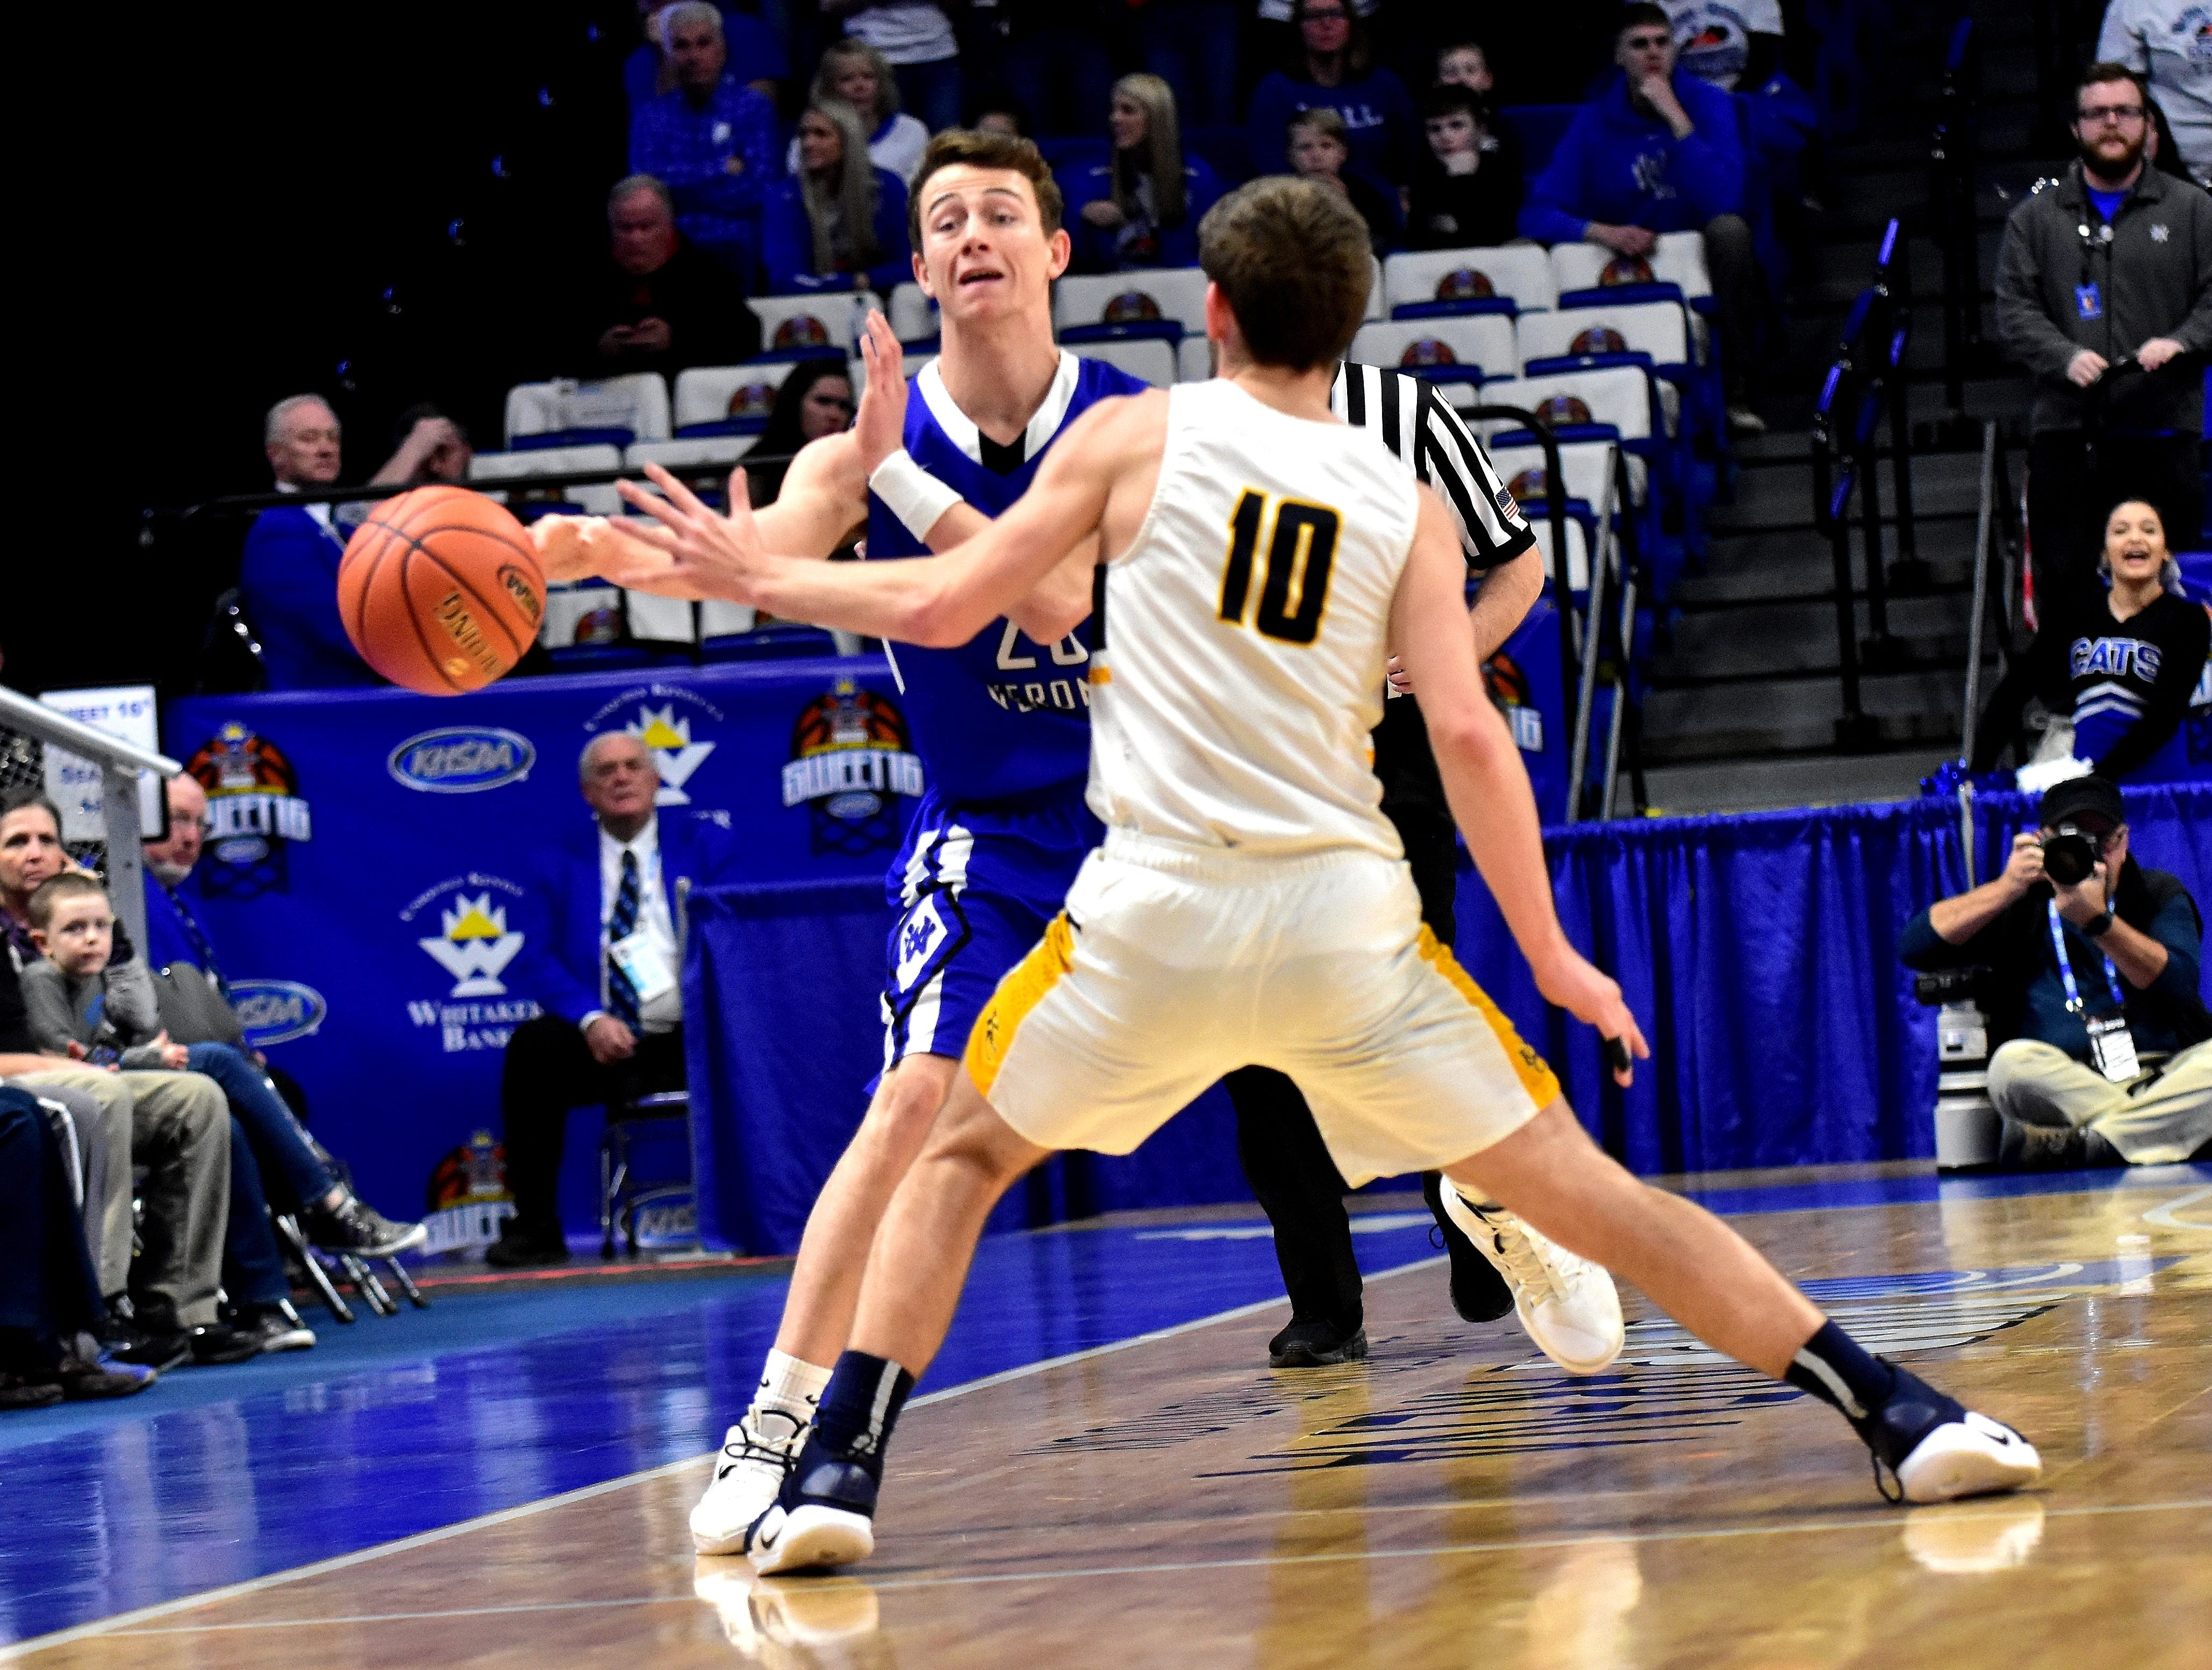 Bryson Stanley passes the ball over the time line for Walton Verona at the KHSAA Sweet 16 Tournament at Rupp Arena in Lexington, KY, March 6, 2019